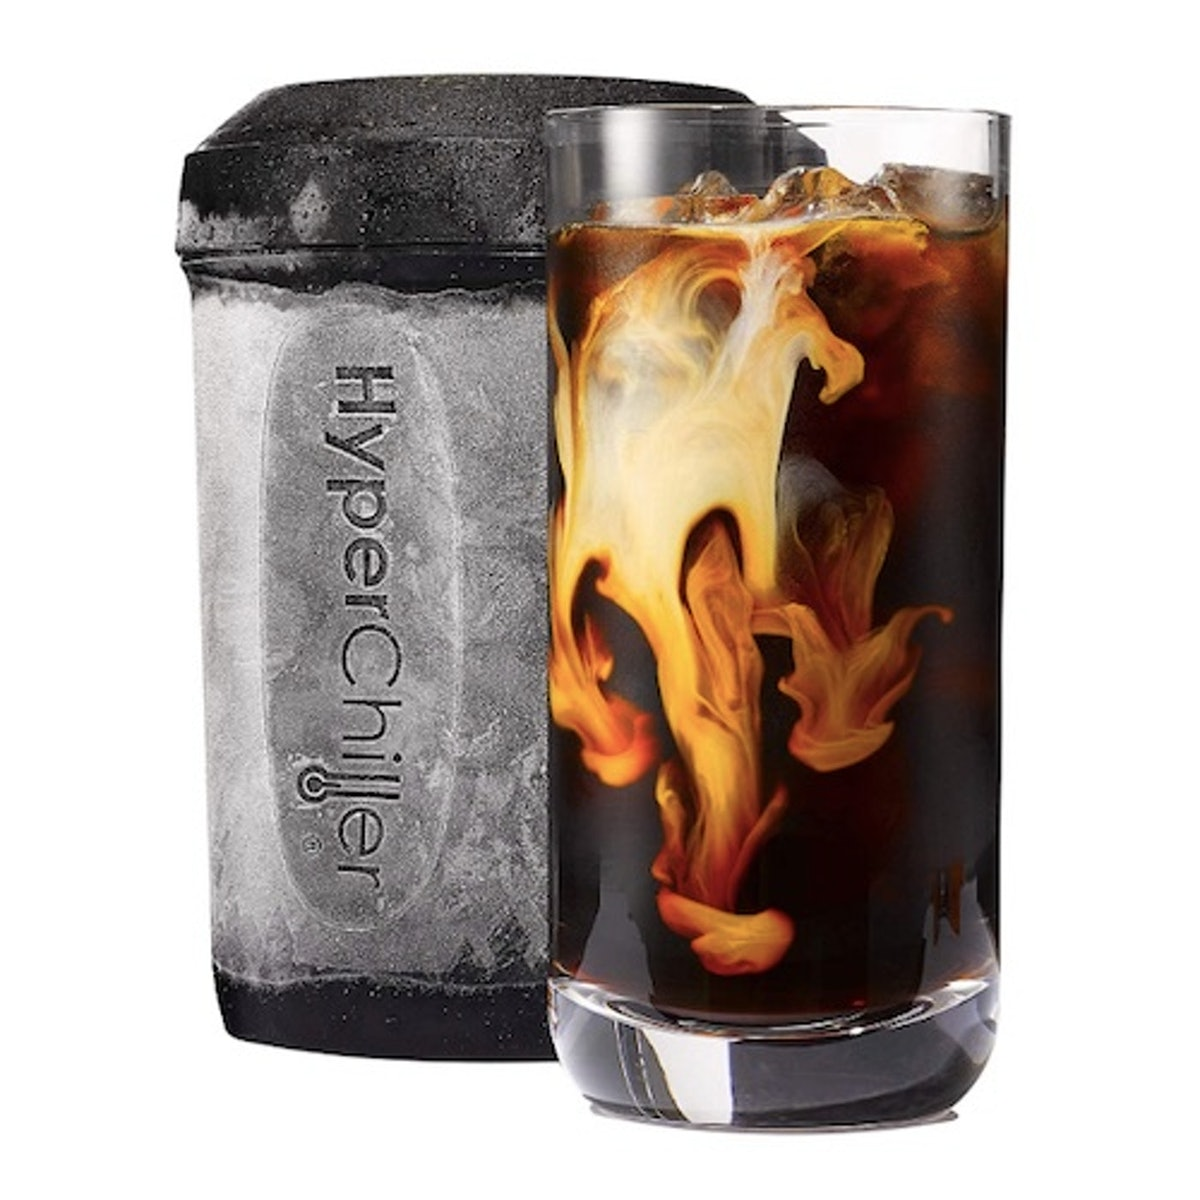 Maxi-Matic HyperChiller HC2 Coffee And Beverage Cooler